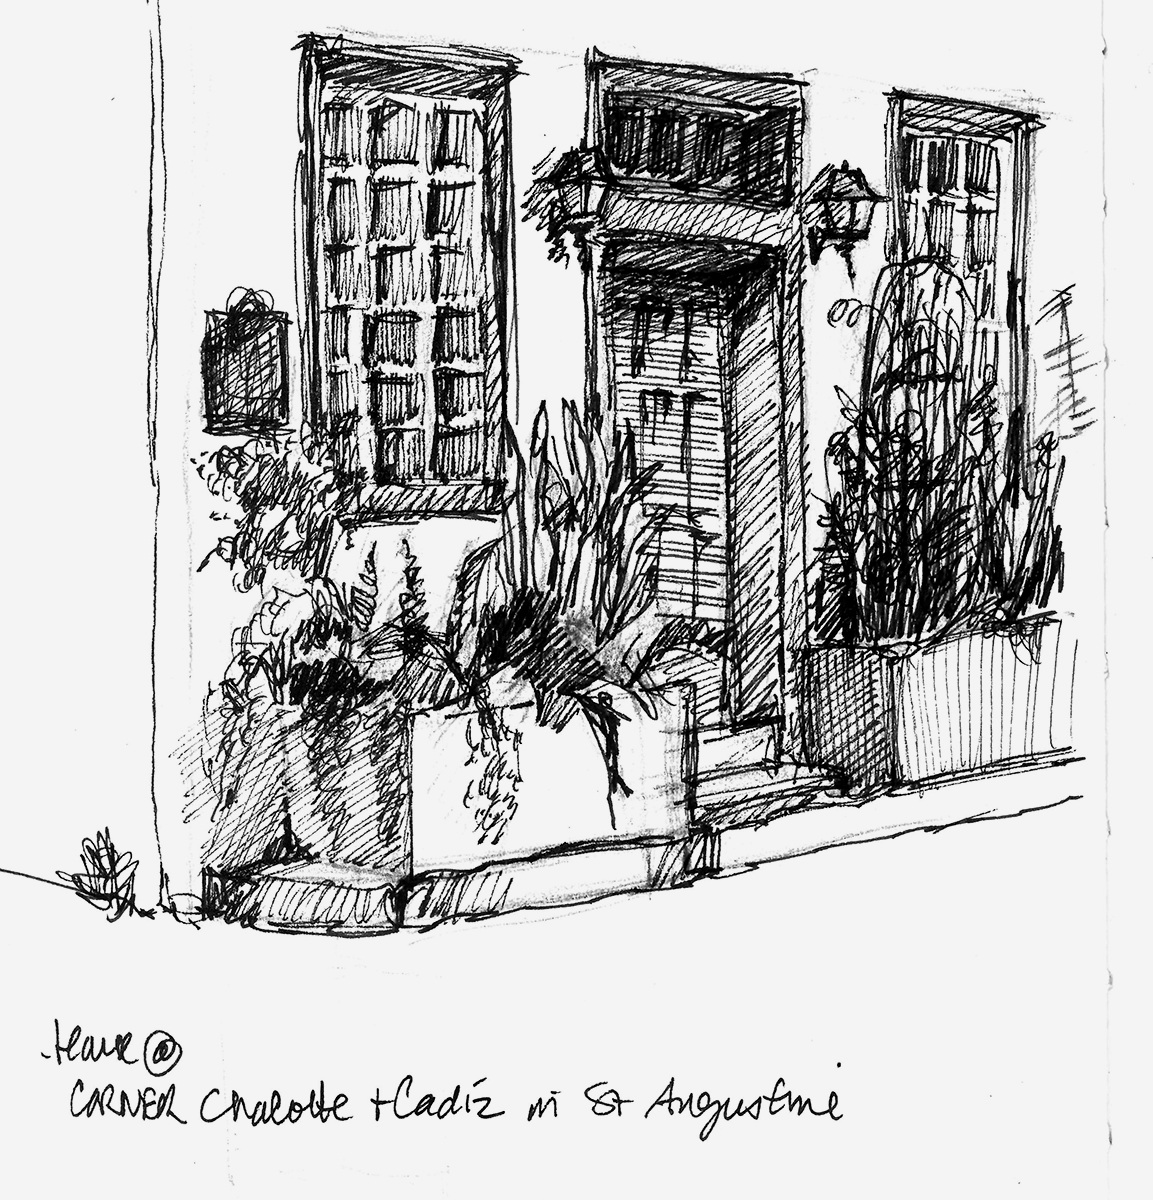 A sketch of the corner of Charlotte and Cadiz Streets while sitting on the steps of the St. Augustine Art Association building.